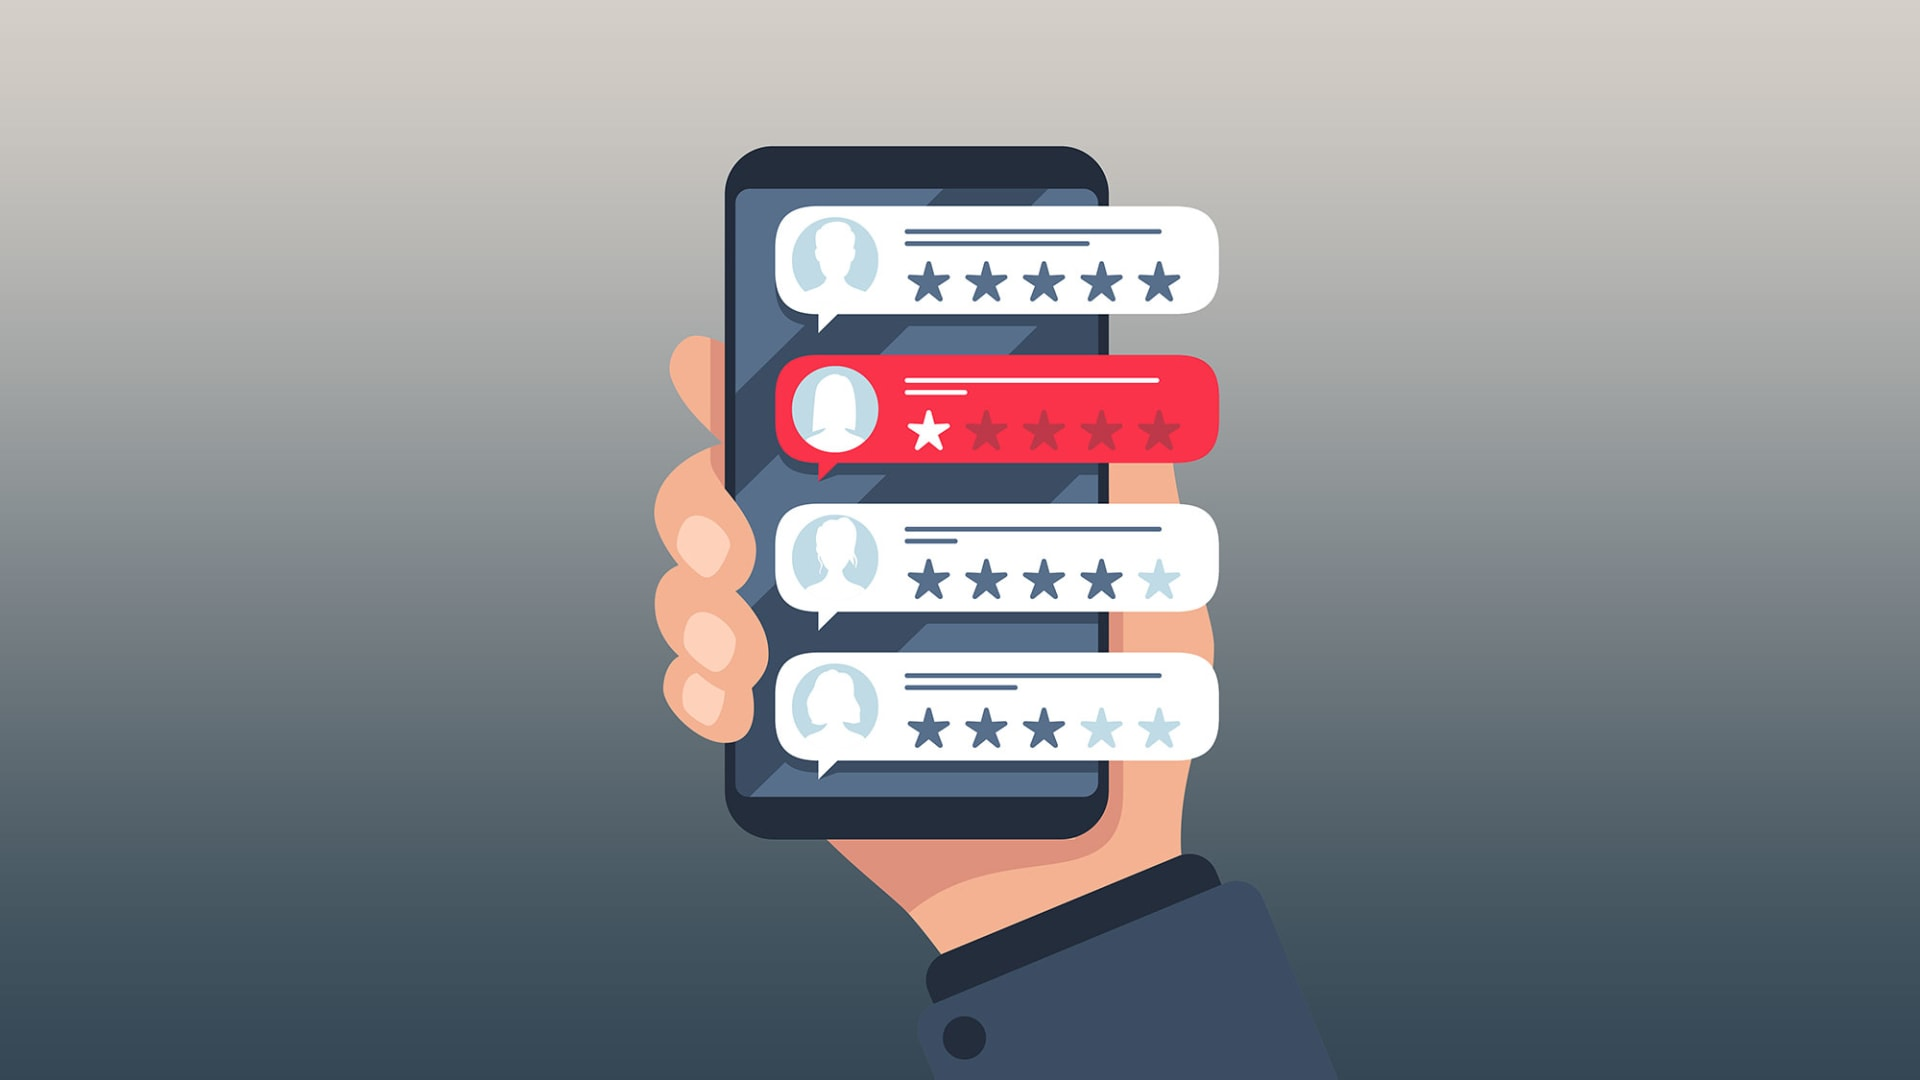 3 Insights You Can Pull Out of Bad Customer Reviews